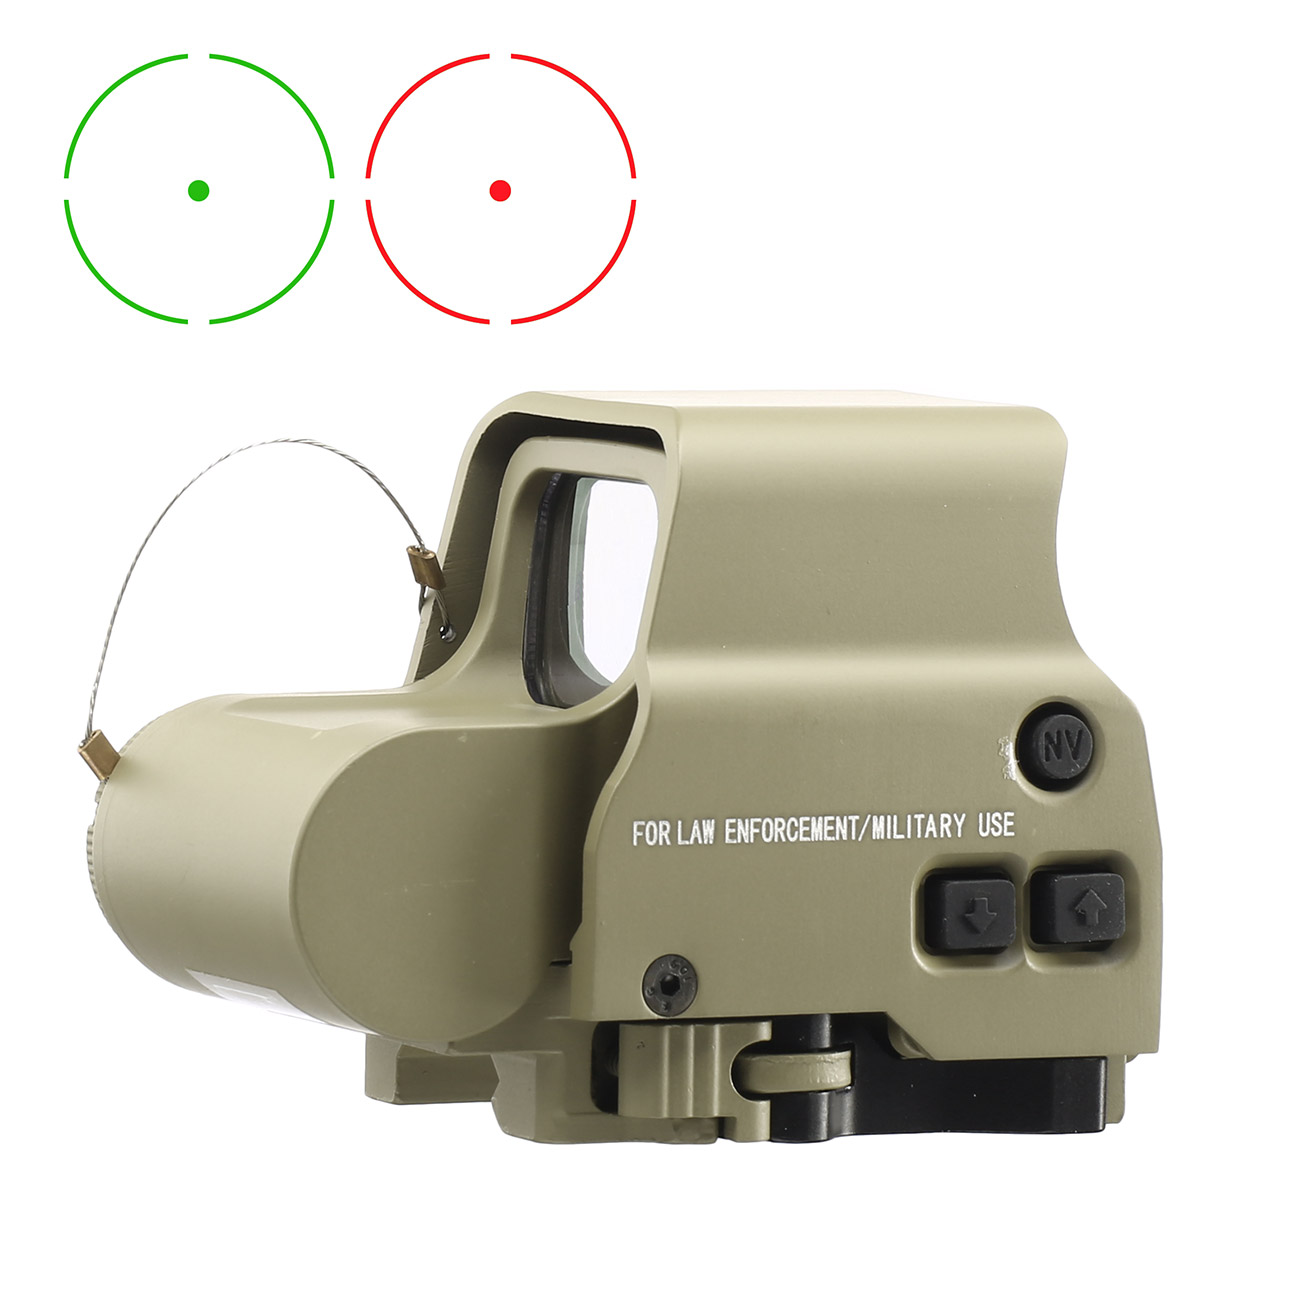 Aim-O X2 Type Holosight rot / grün mit QD Mount tan AO 3056-DE 0